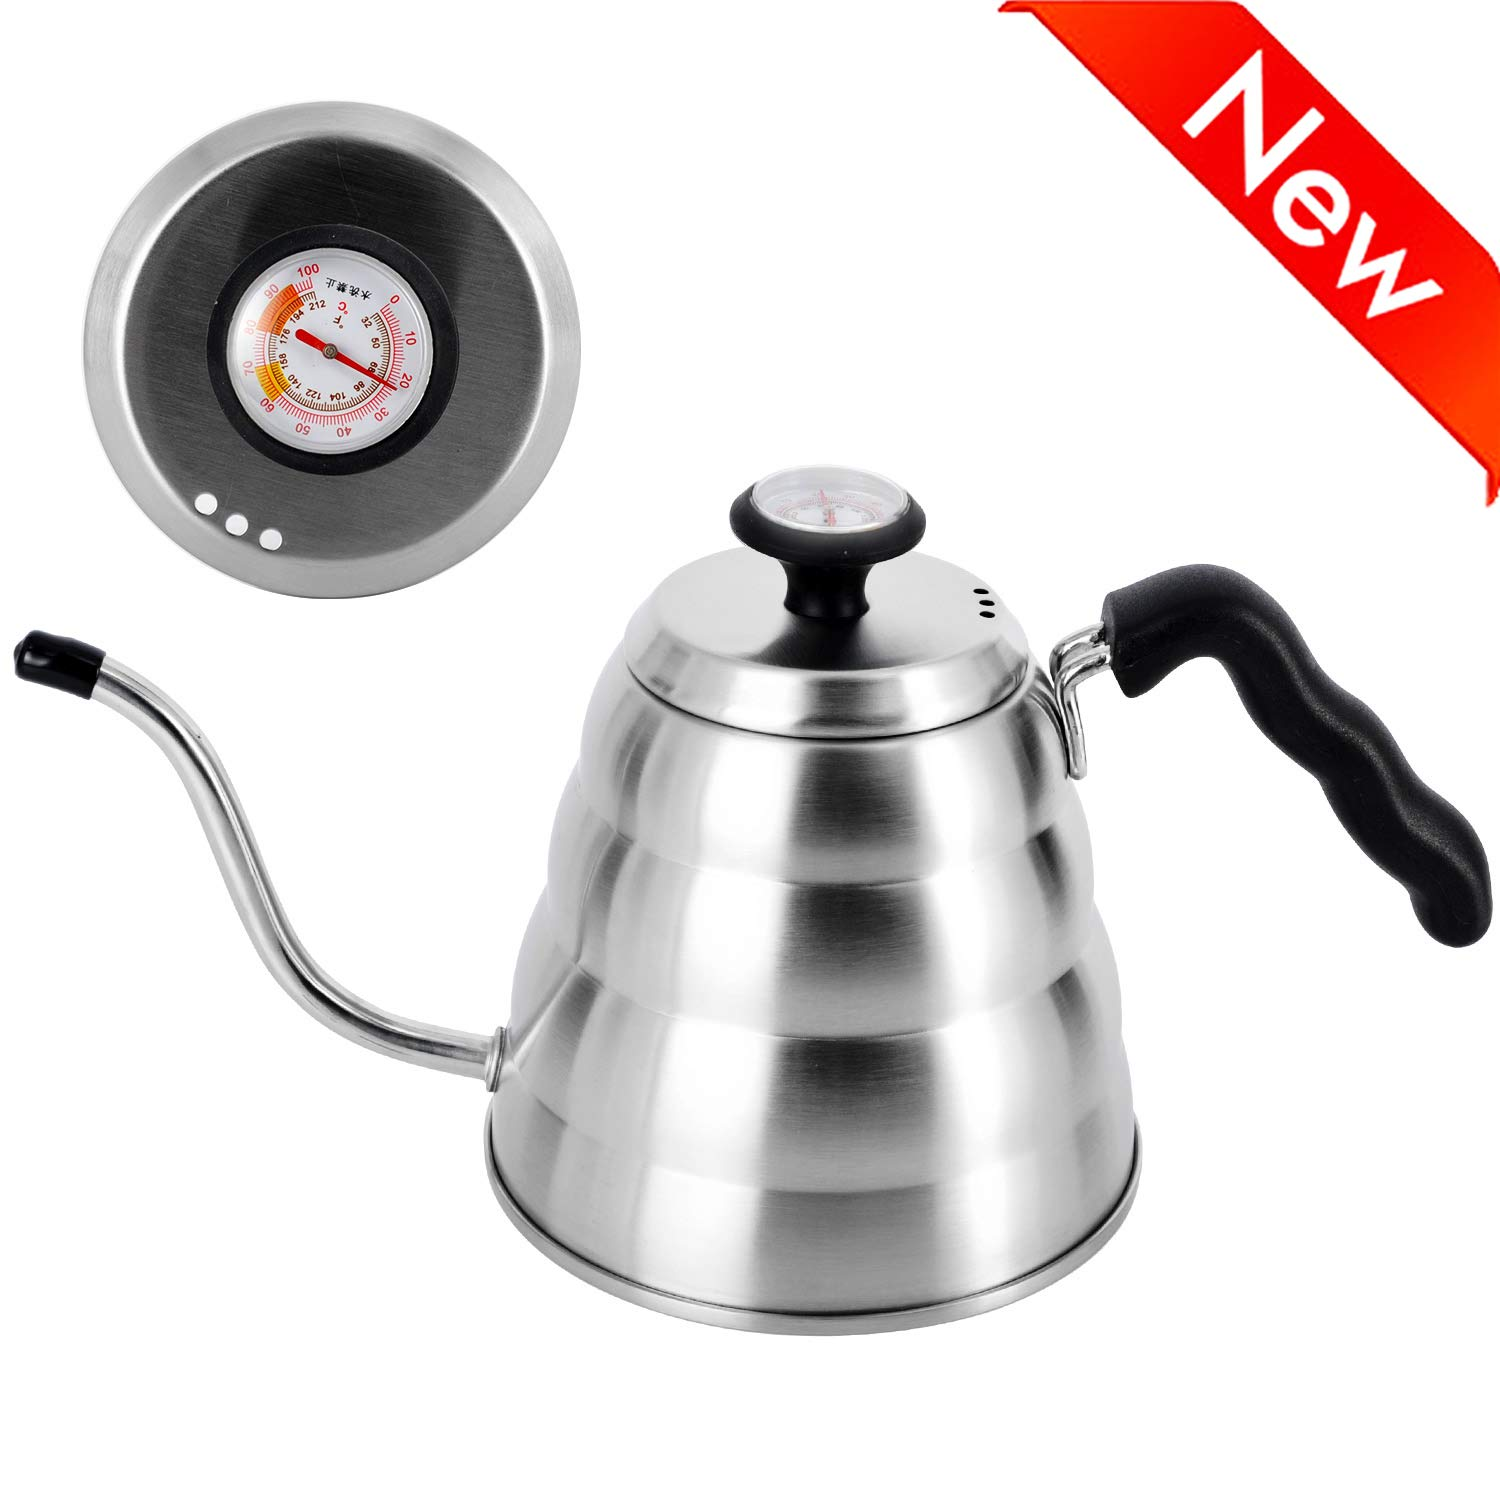 Pour Over Coffee Kettle with Exact Thermometer,Naturous Gooseneck Kettle Tea Kettle for Drip Coffee and Tea 1.2 Liter 40 fl oz